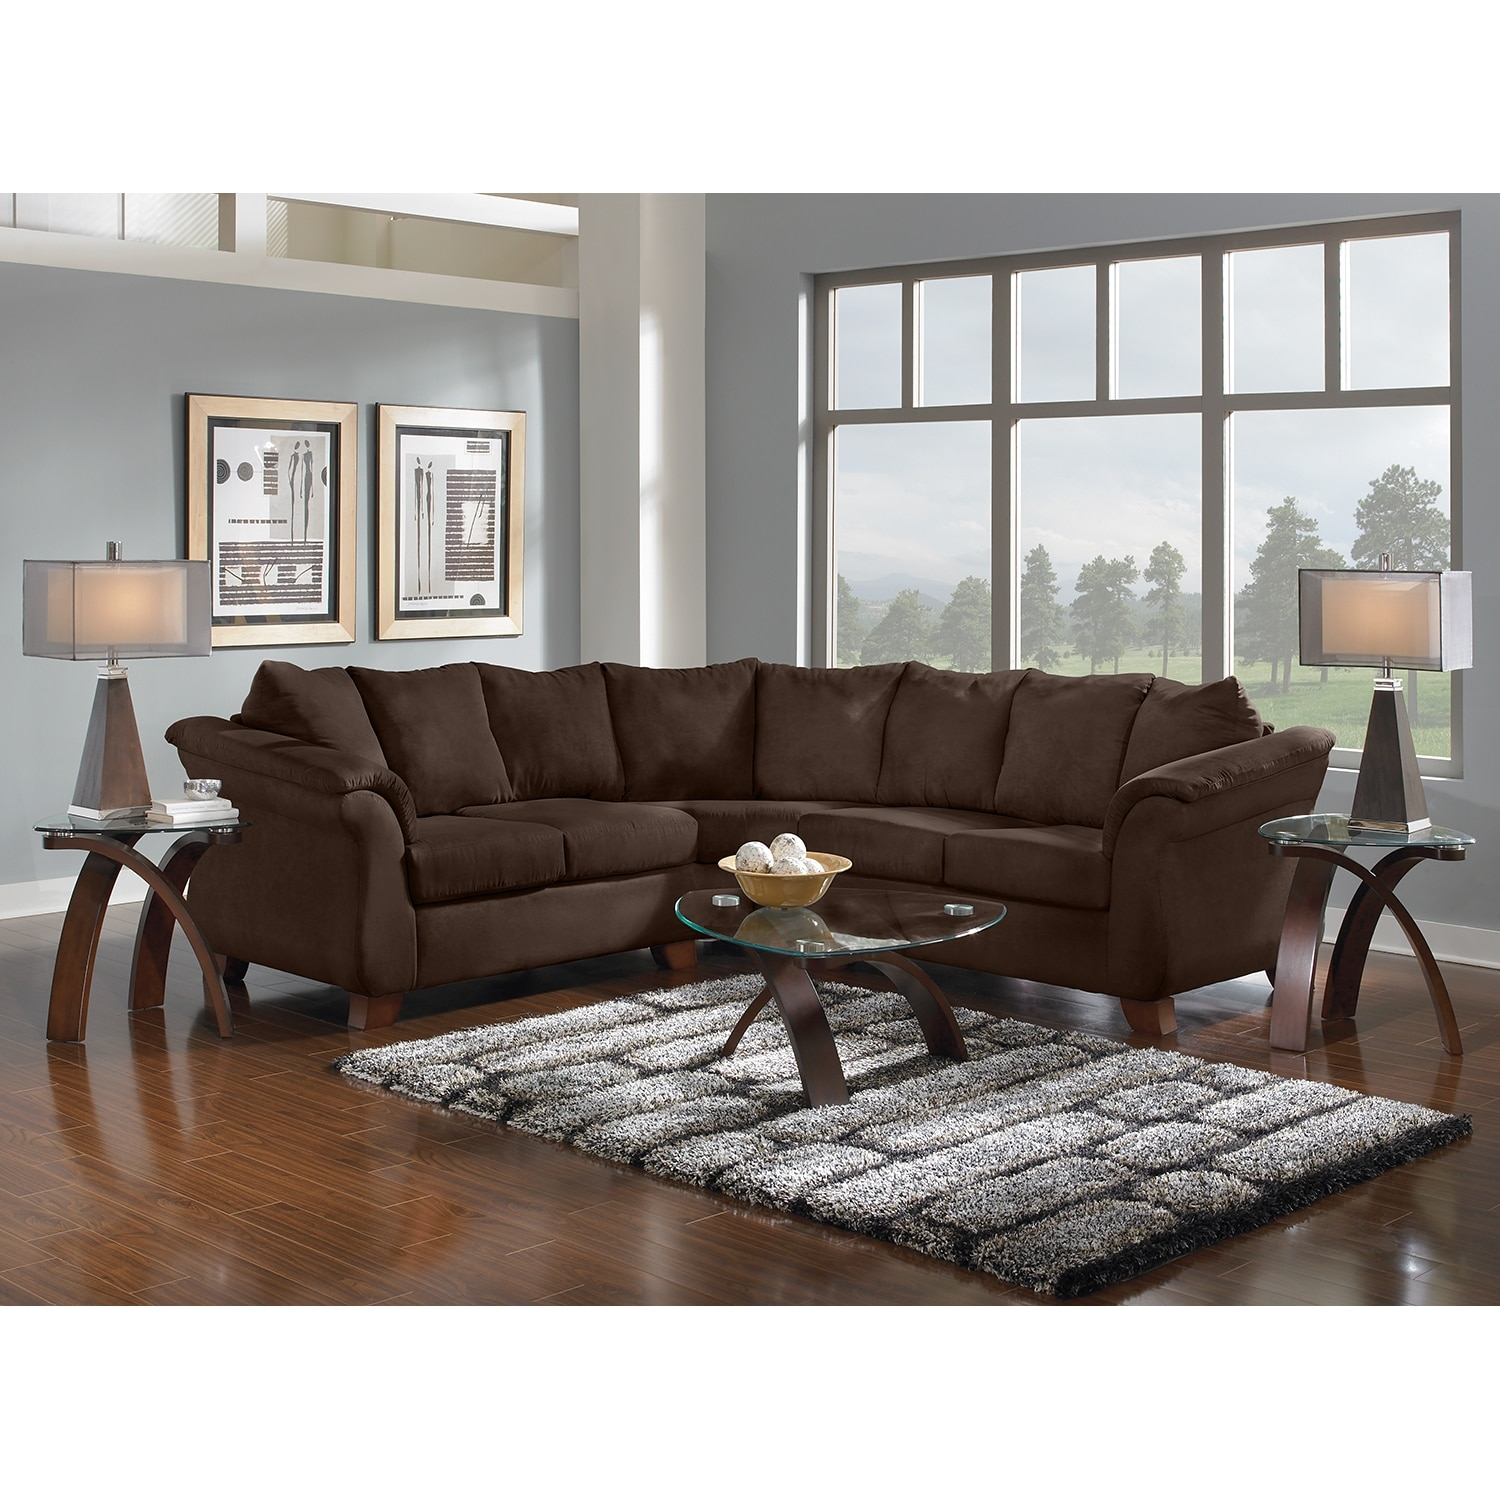 American Signature Furniture: Adrian 2-Piece Sectional - Chocolate